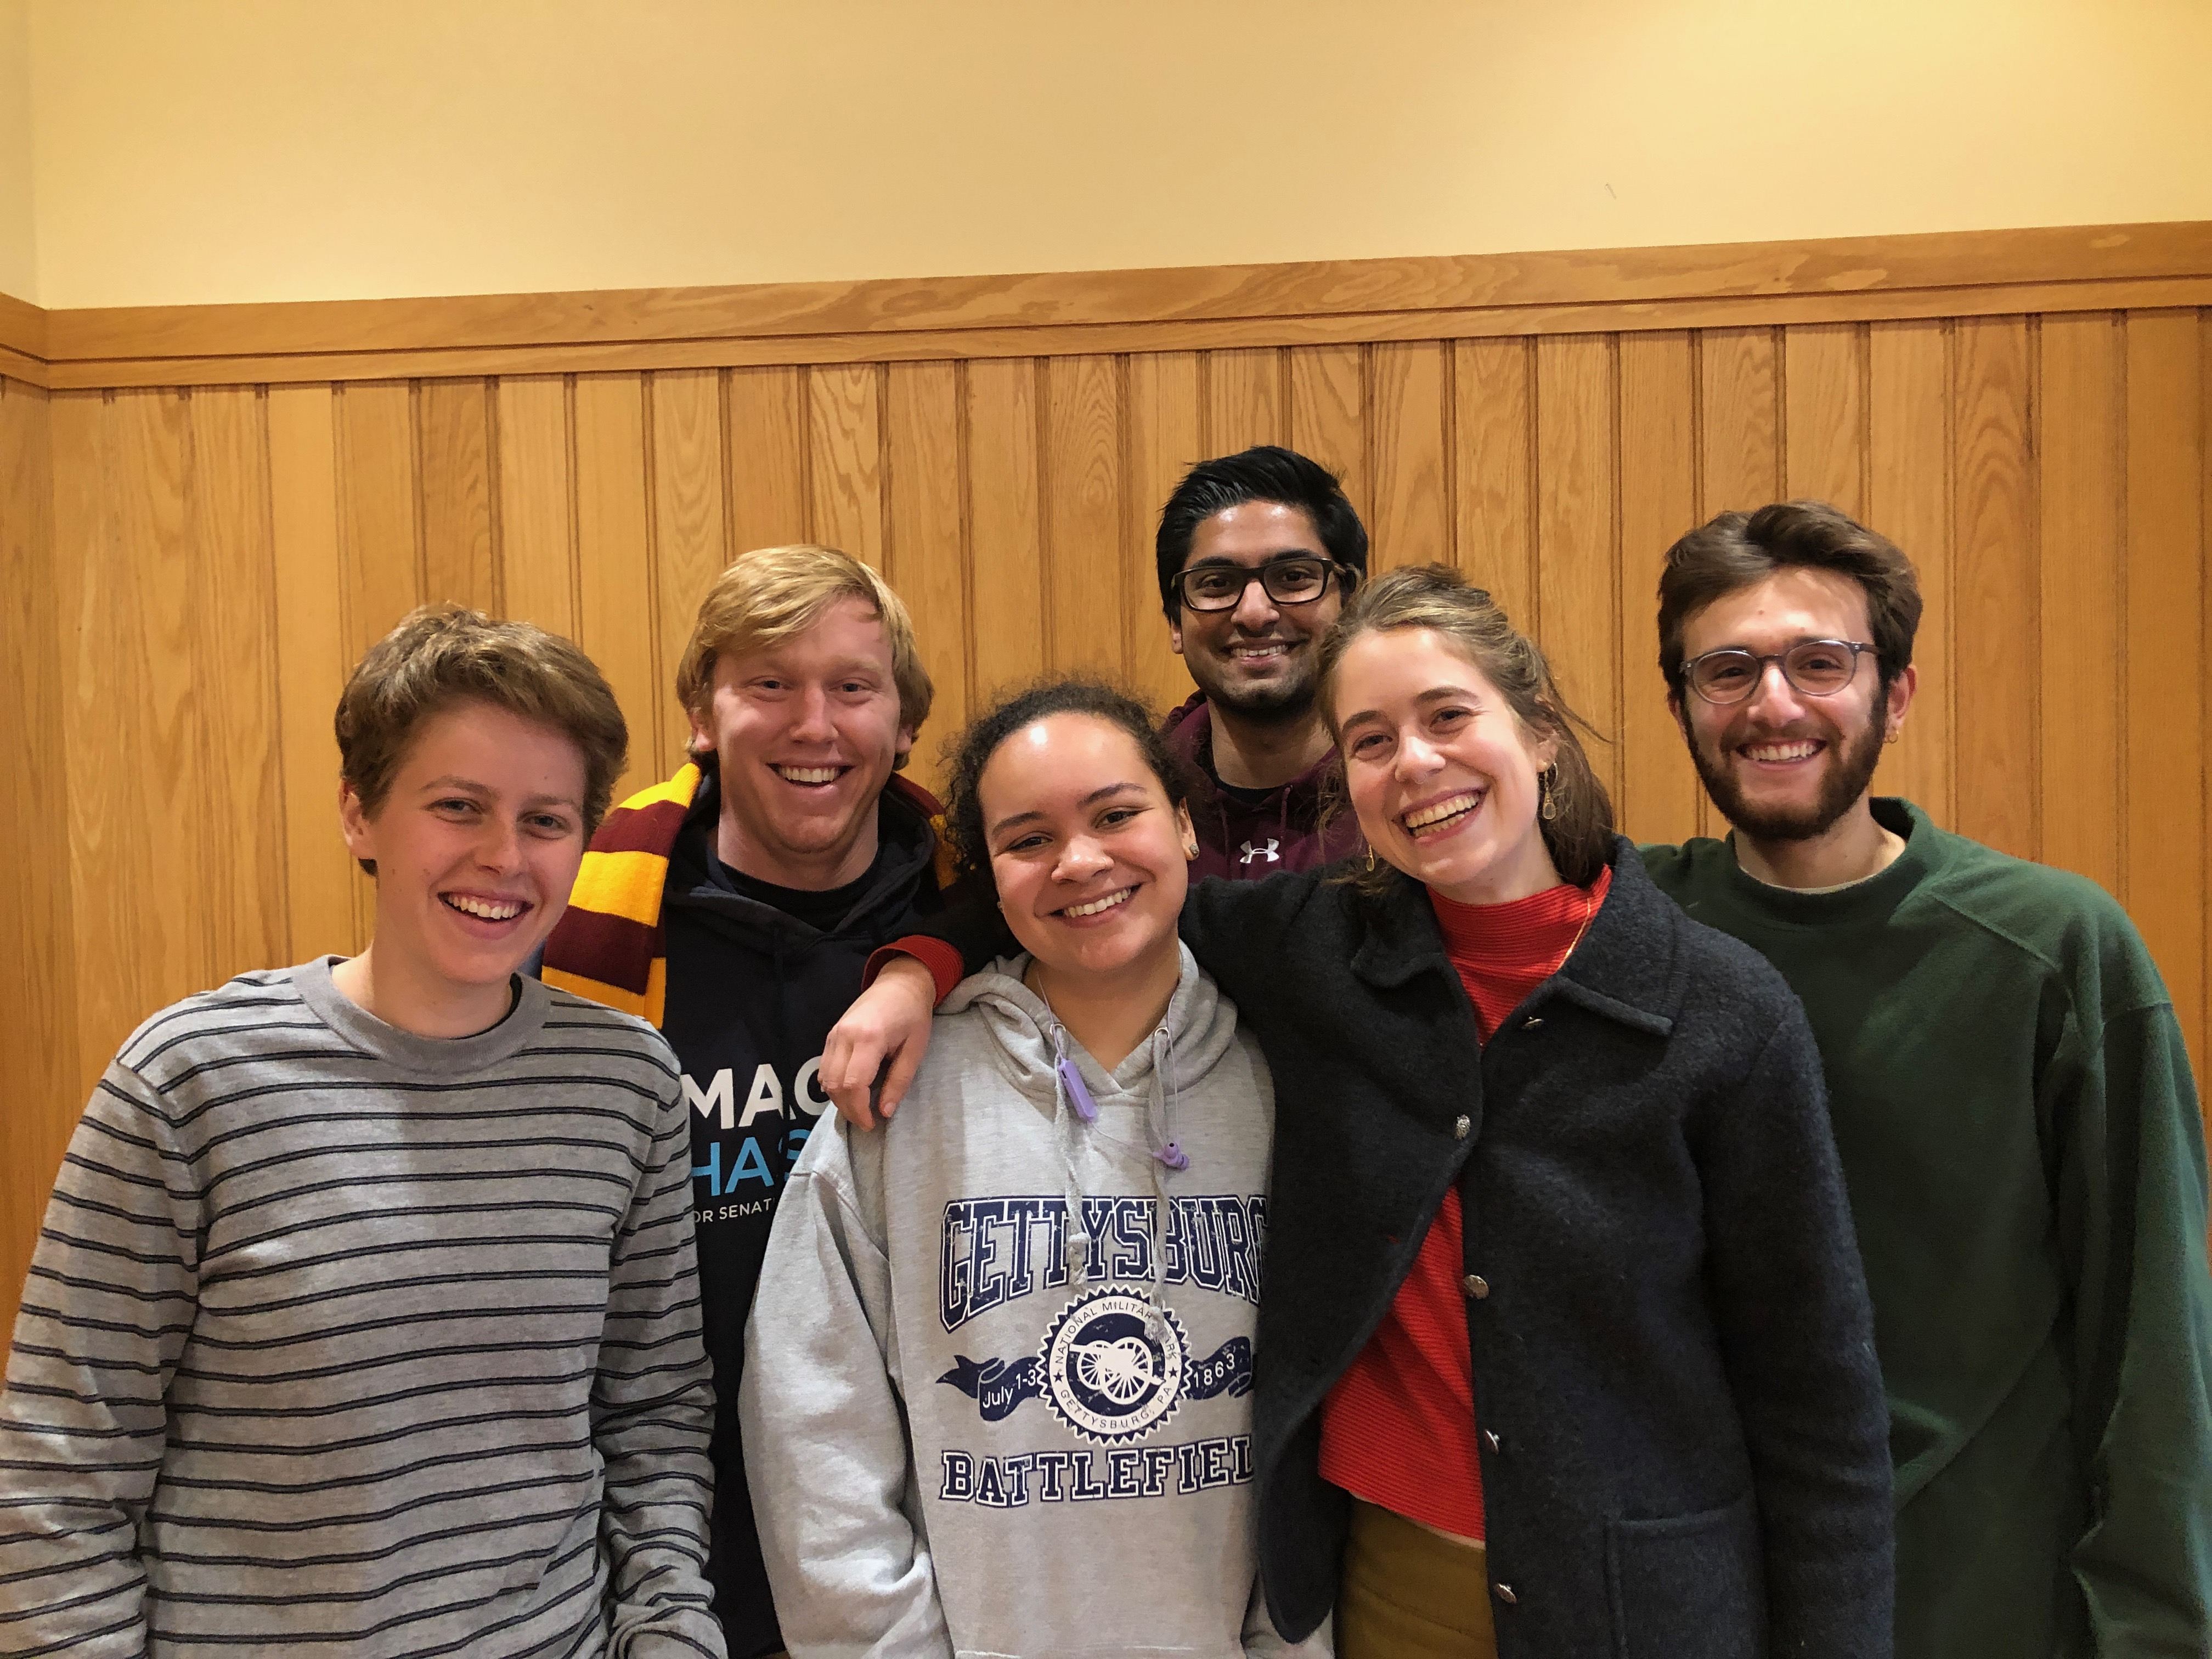 Jonah Gelfand, Nalin Beckman, Noa Gordan-Guterman, Will Cramer, Rehaan Bux, Lucy Brown pose together in the Science Center.